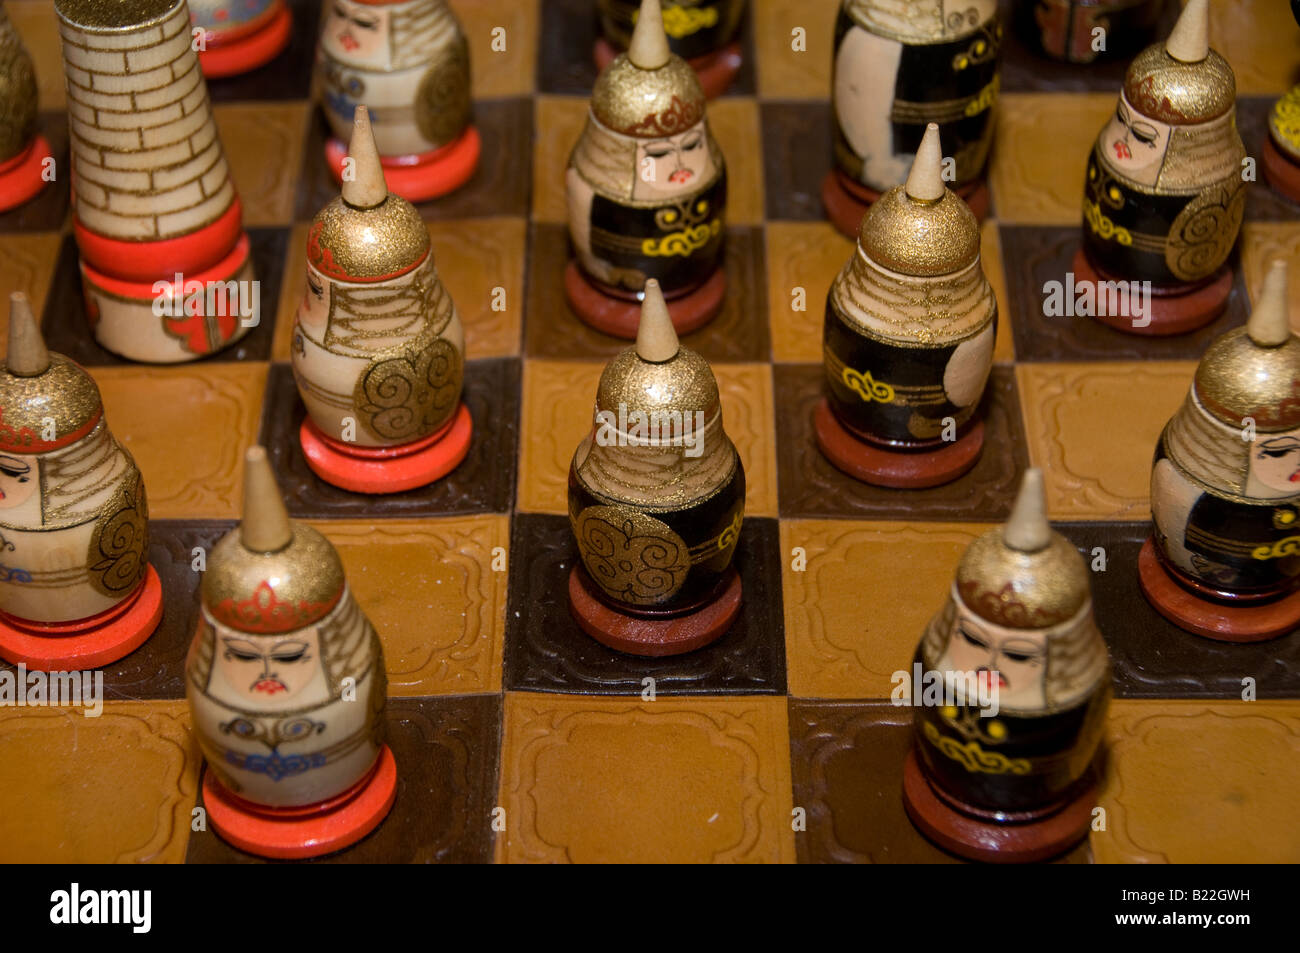 Decorated chess game set. Kazakhstan - Stock Image